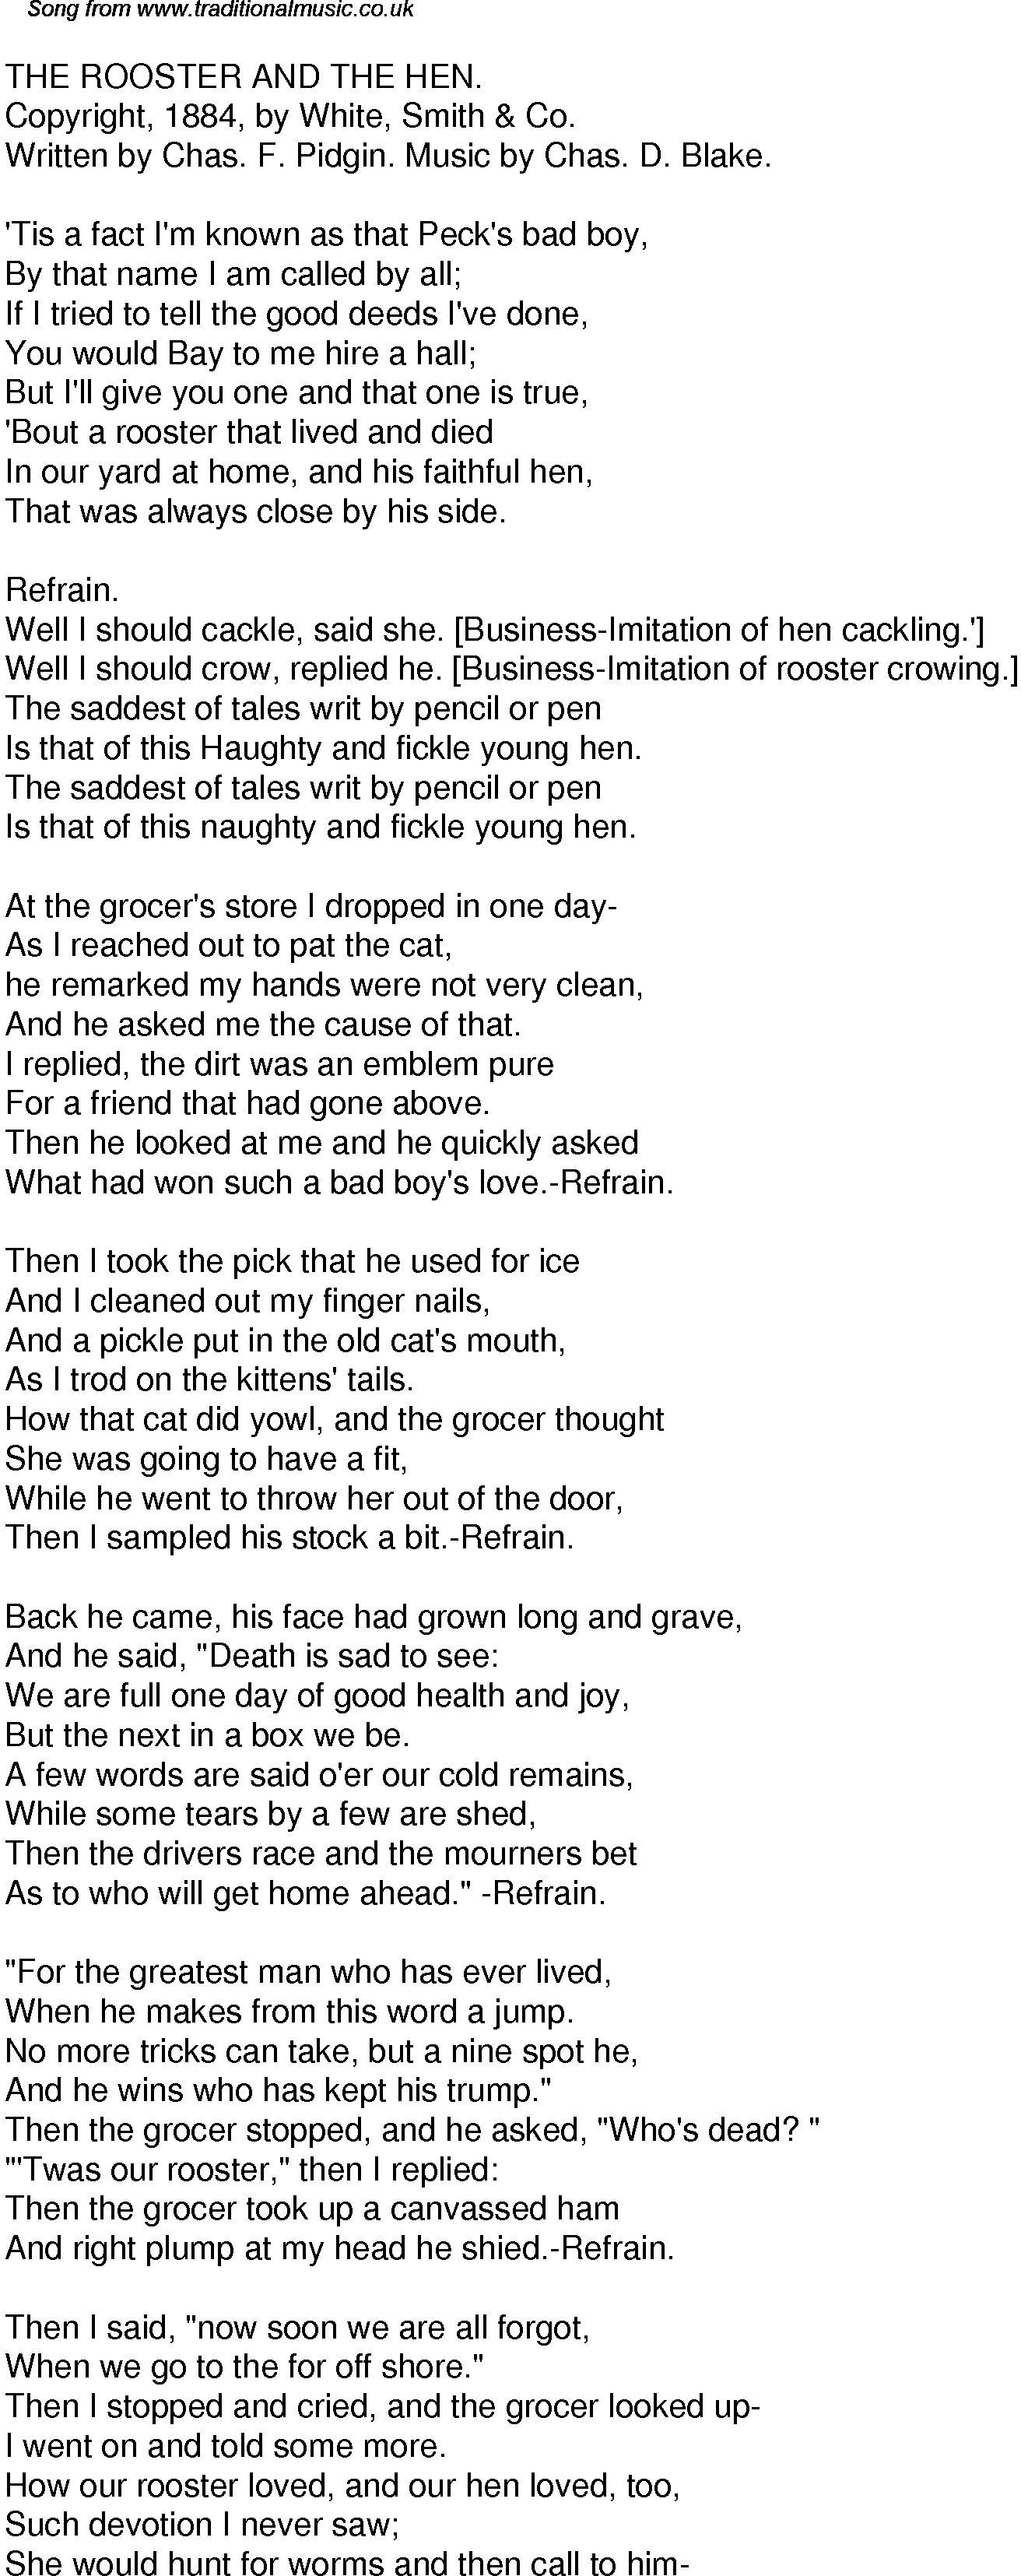 Old Time Song Lyrics for 40 The Rooster And The Hen